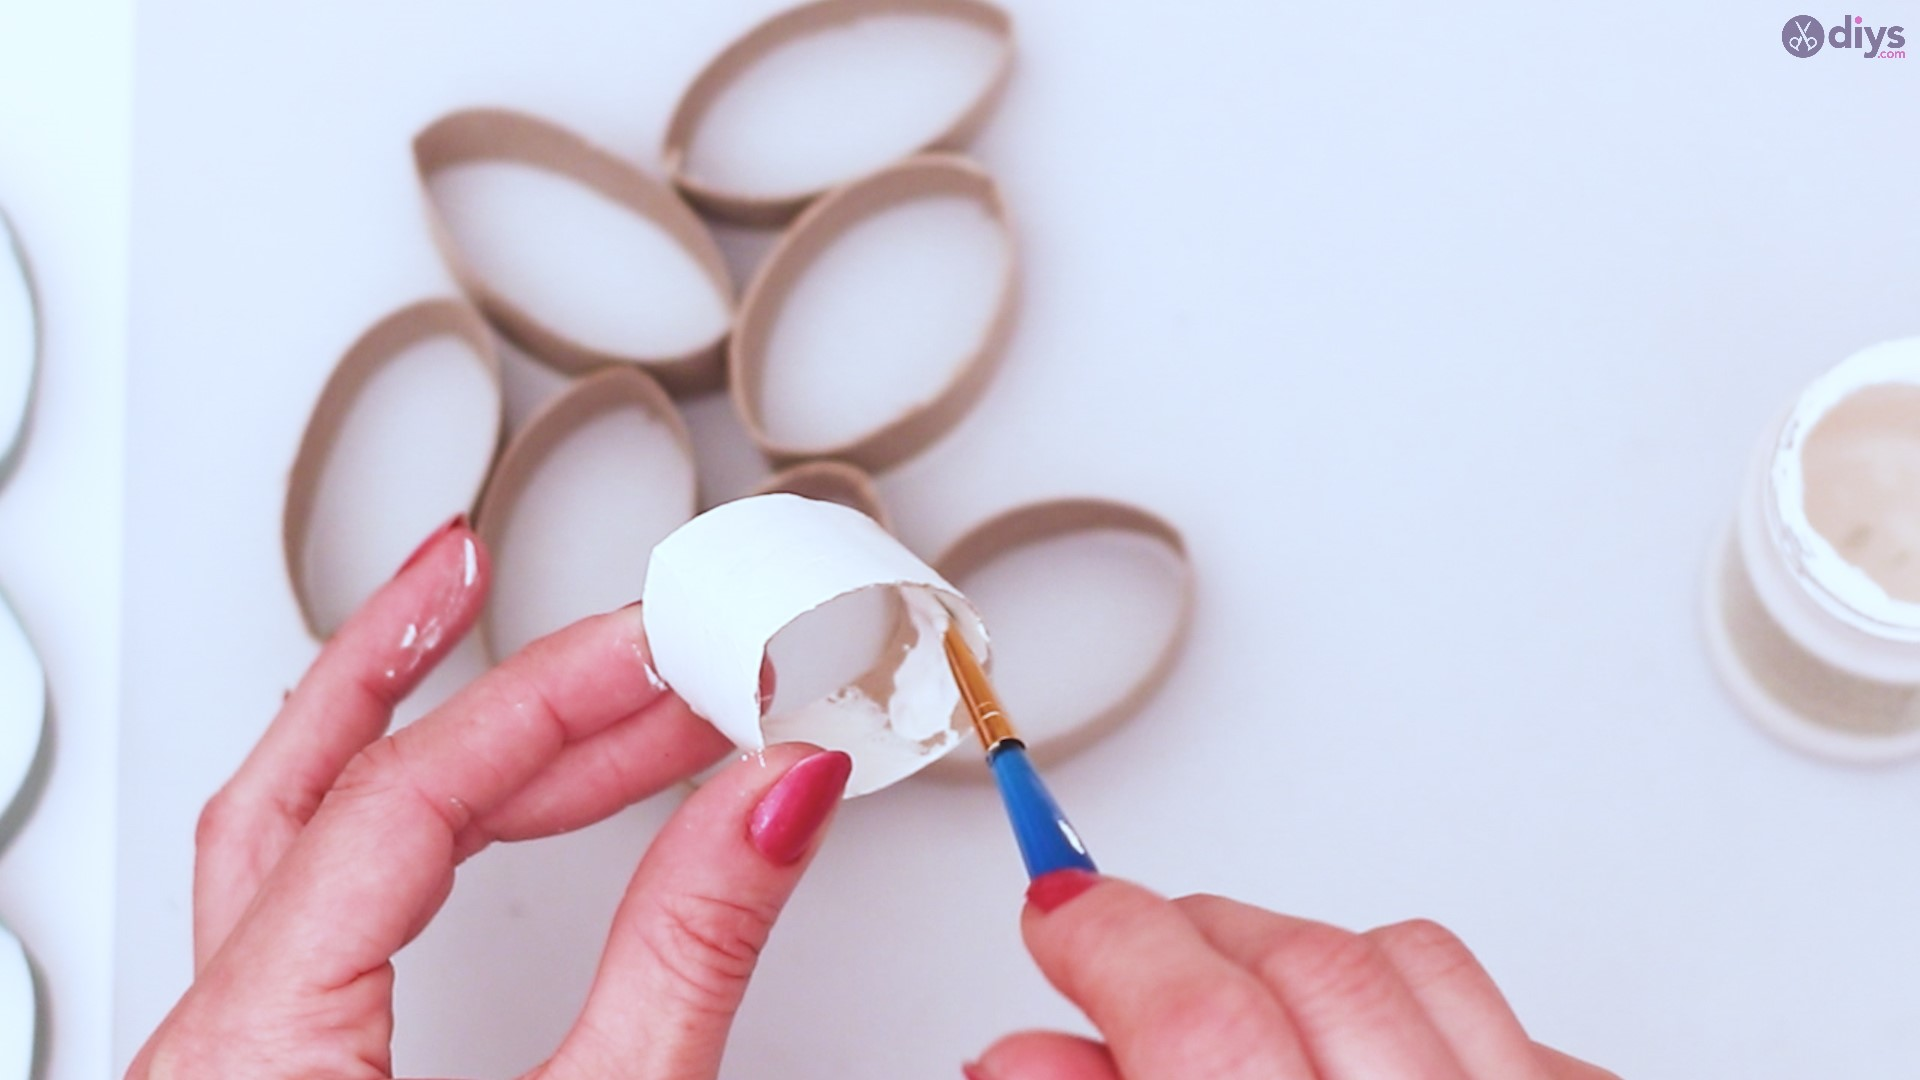 Toilet paper roll wall decor diy project (13)